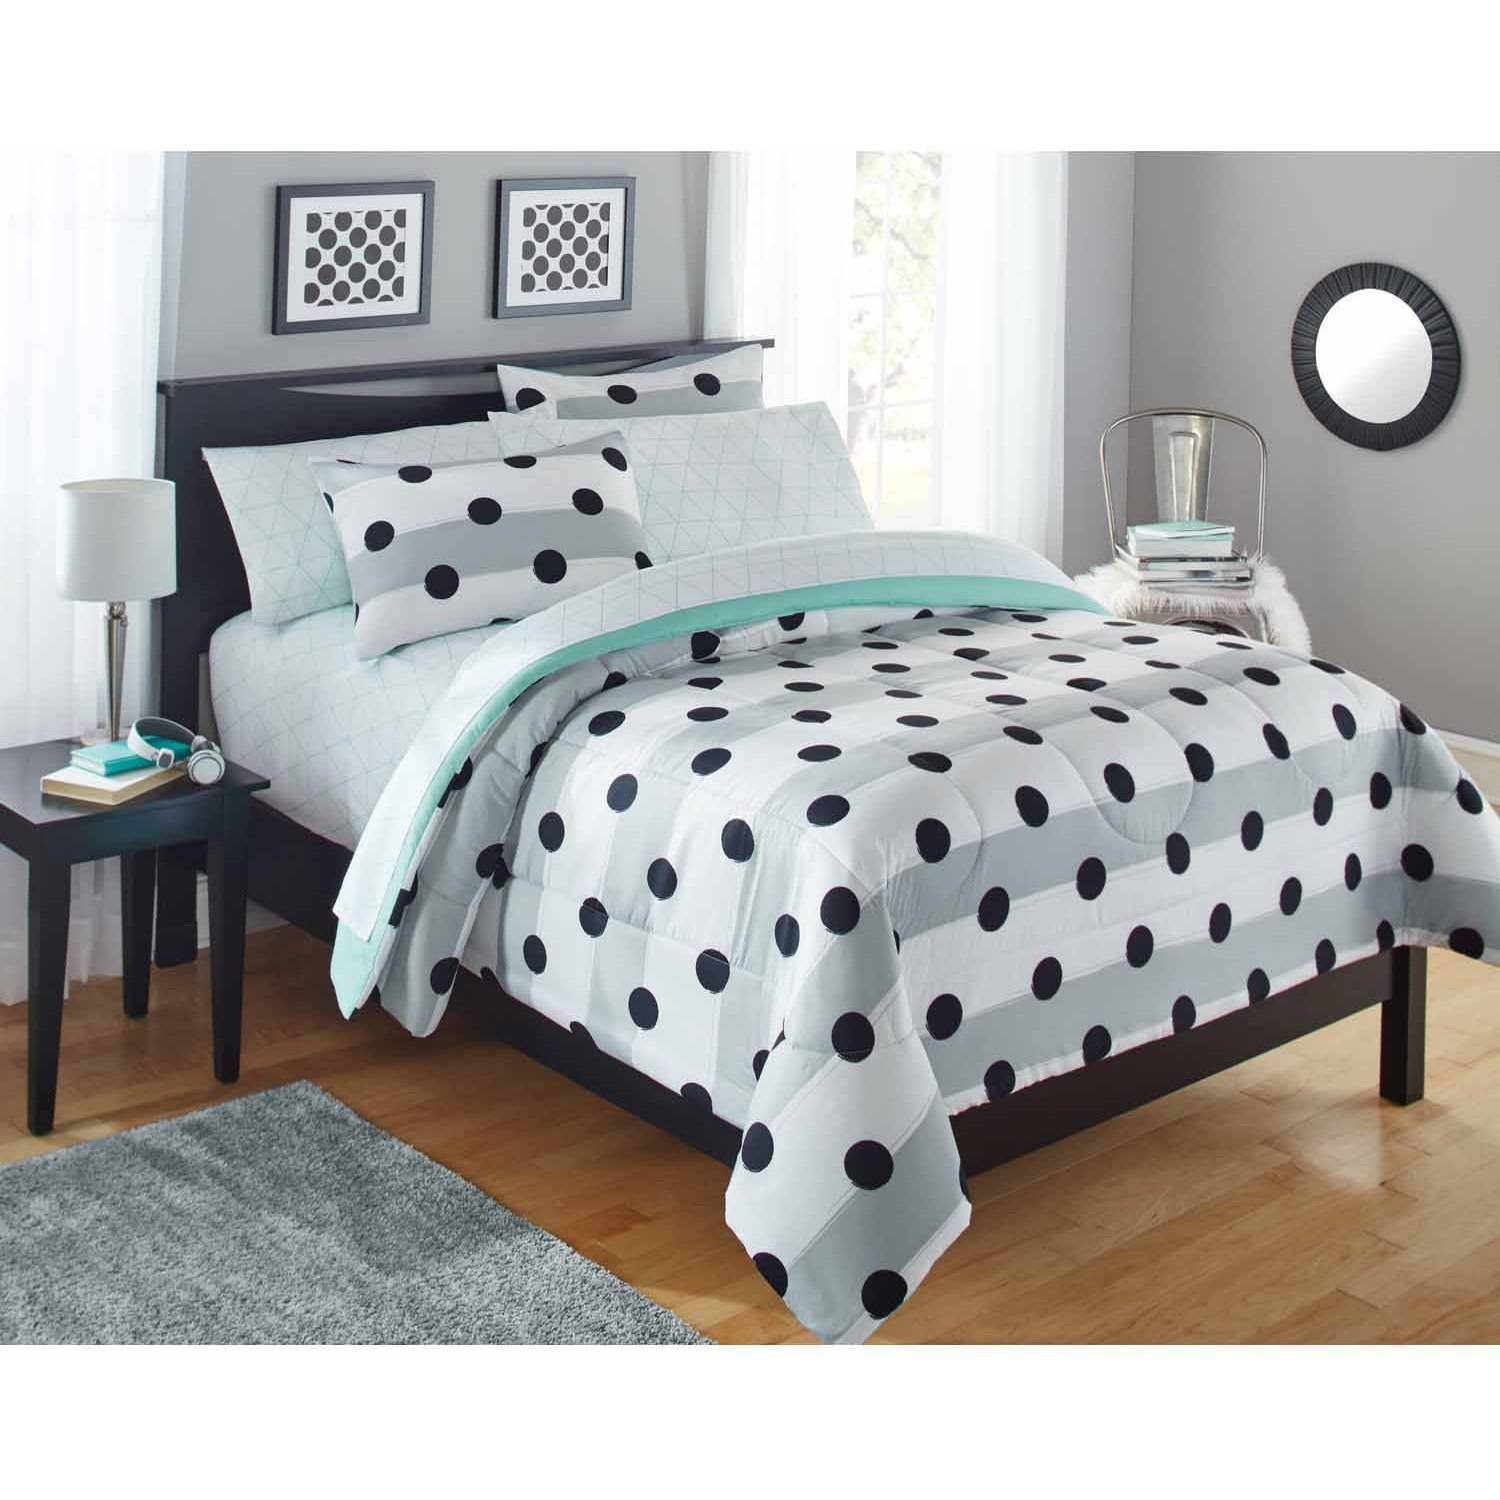 Bedding sets for teenage girls walmart - Bedding Sets For Teenage Girls Walmart 12